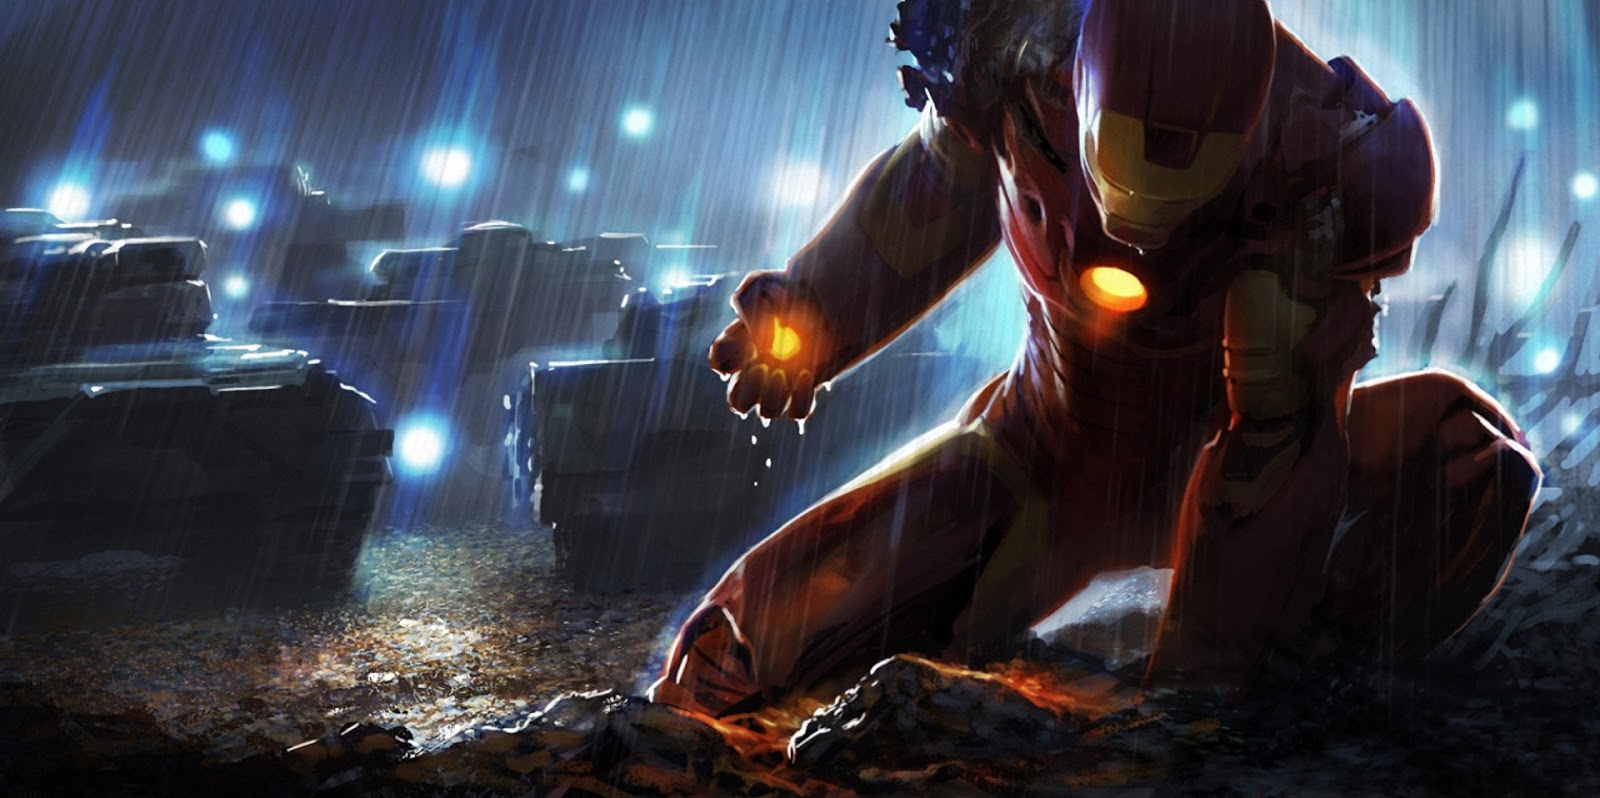 Iron Man Comic Marvel Heroes Superhero Raining Tanks HD Wallpaper 1600x798